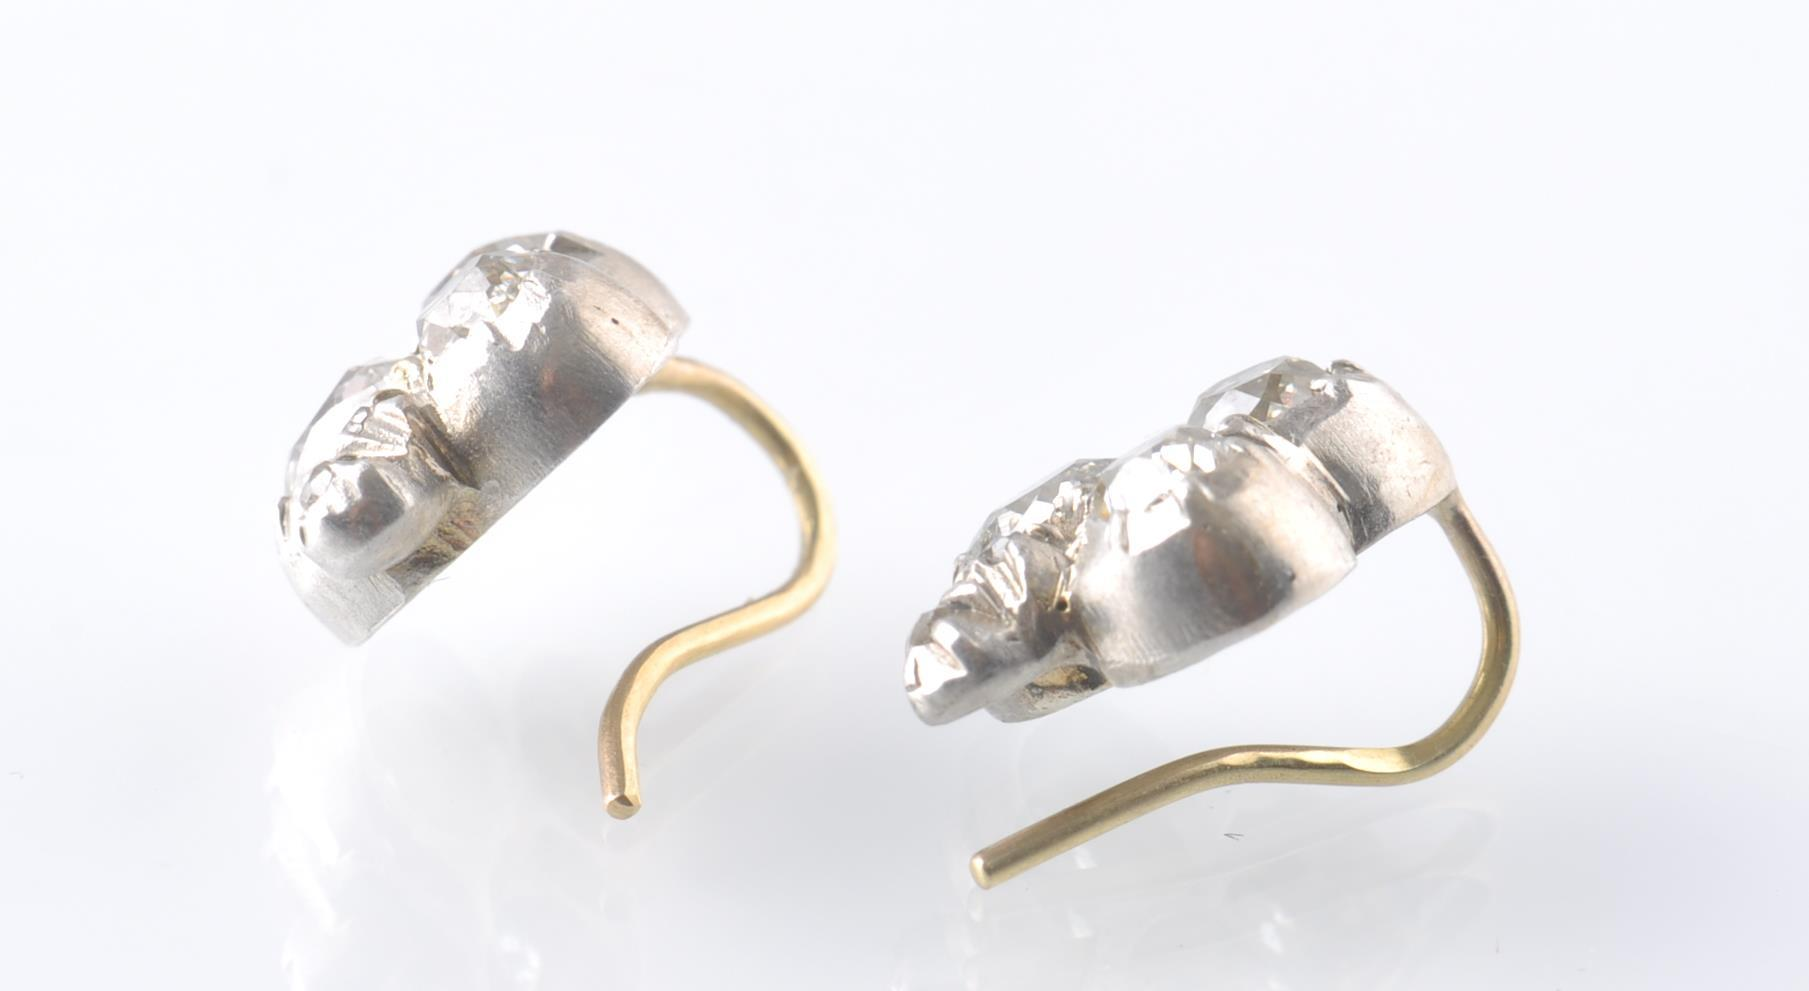 A PAIR OF WHITE GOLD AND DIAMOND TREFOIL EARRINGS - Image 3 of 3